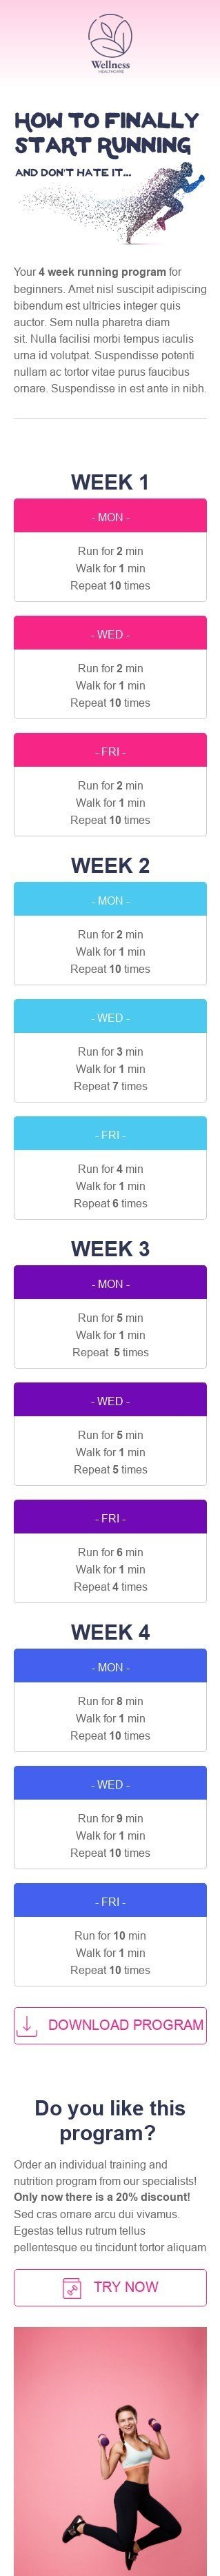 Promo Email Template «Running program» for Health and Wellness industry mobile view